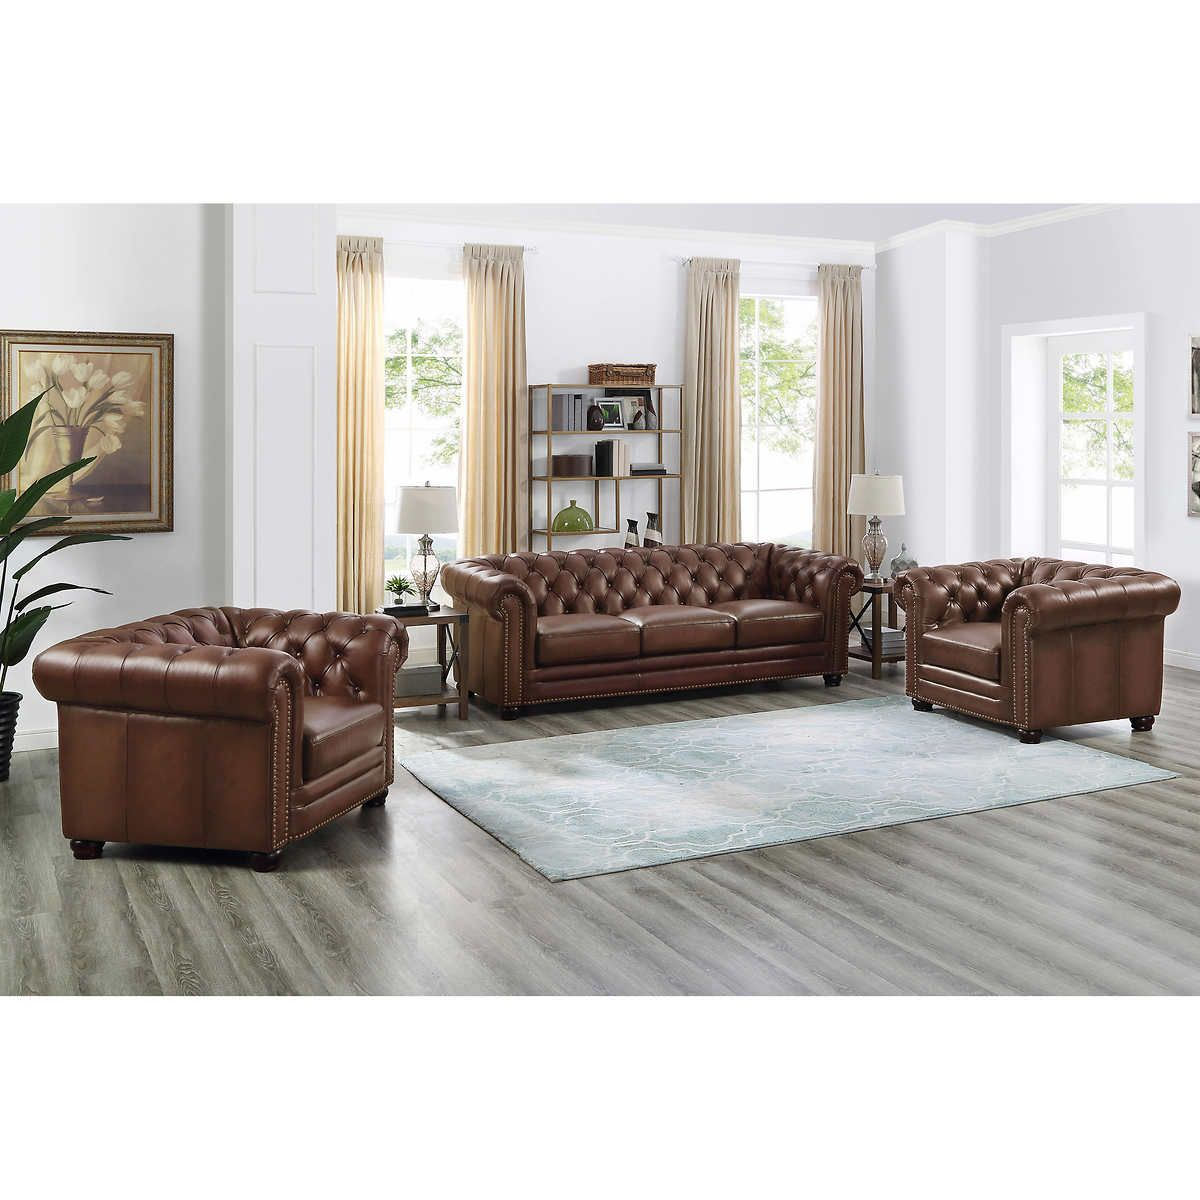 Best Allington 3 Piece Top Grain Leather Set Sofa Chair Chair 640 x 480